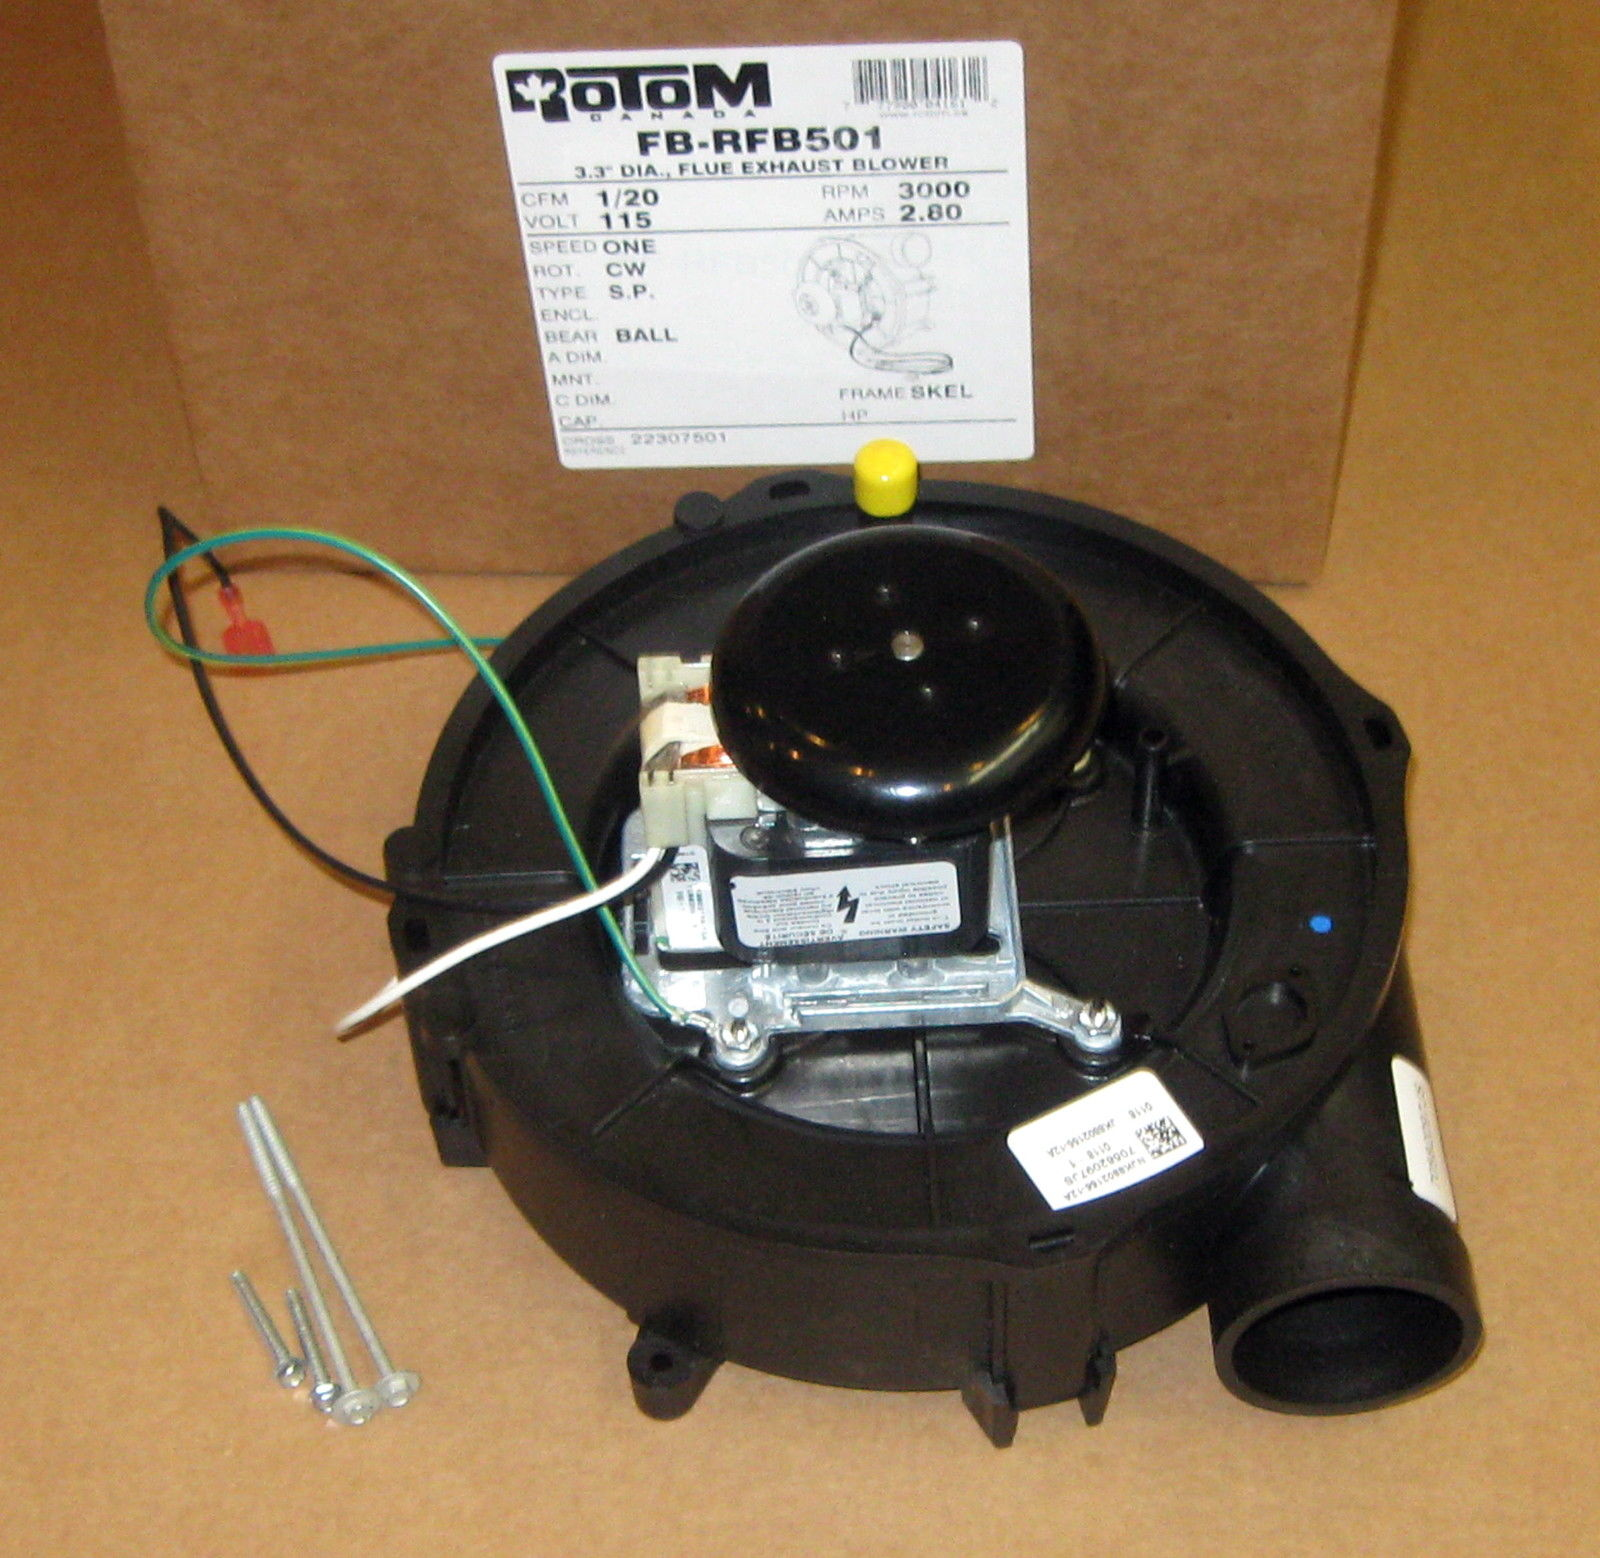 hight resolution of draft inducer furnace blower motor for goodman 22307501 70582097 rotom rfb501